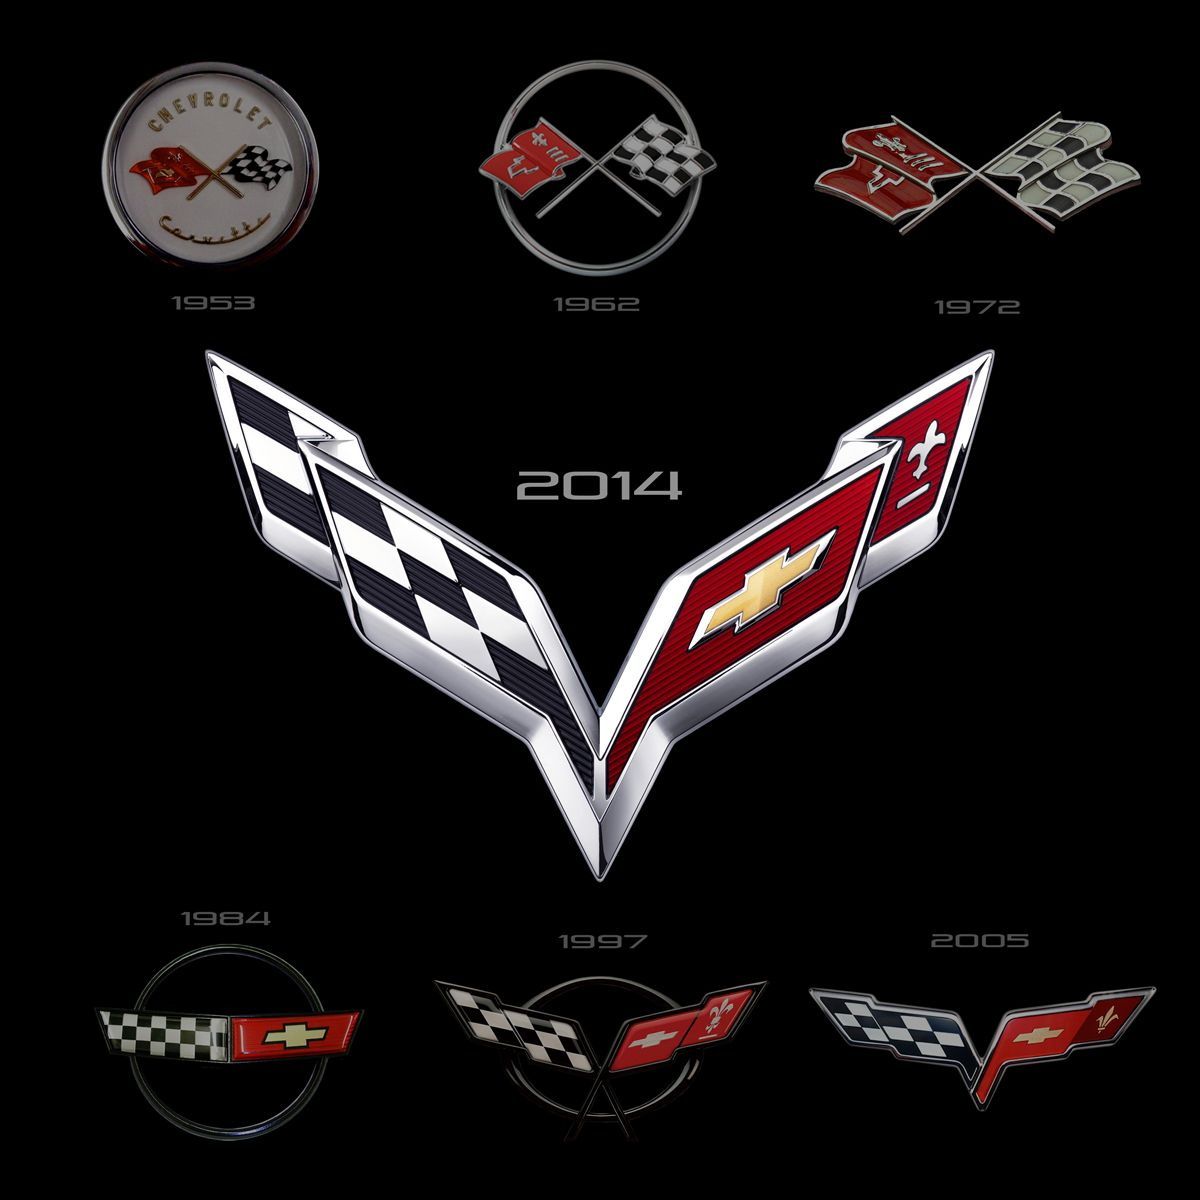 This is a look at all 7 Corvette generation logos which.